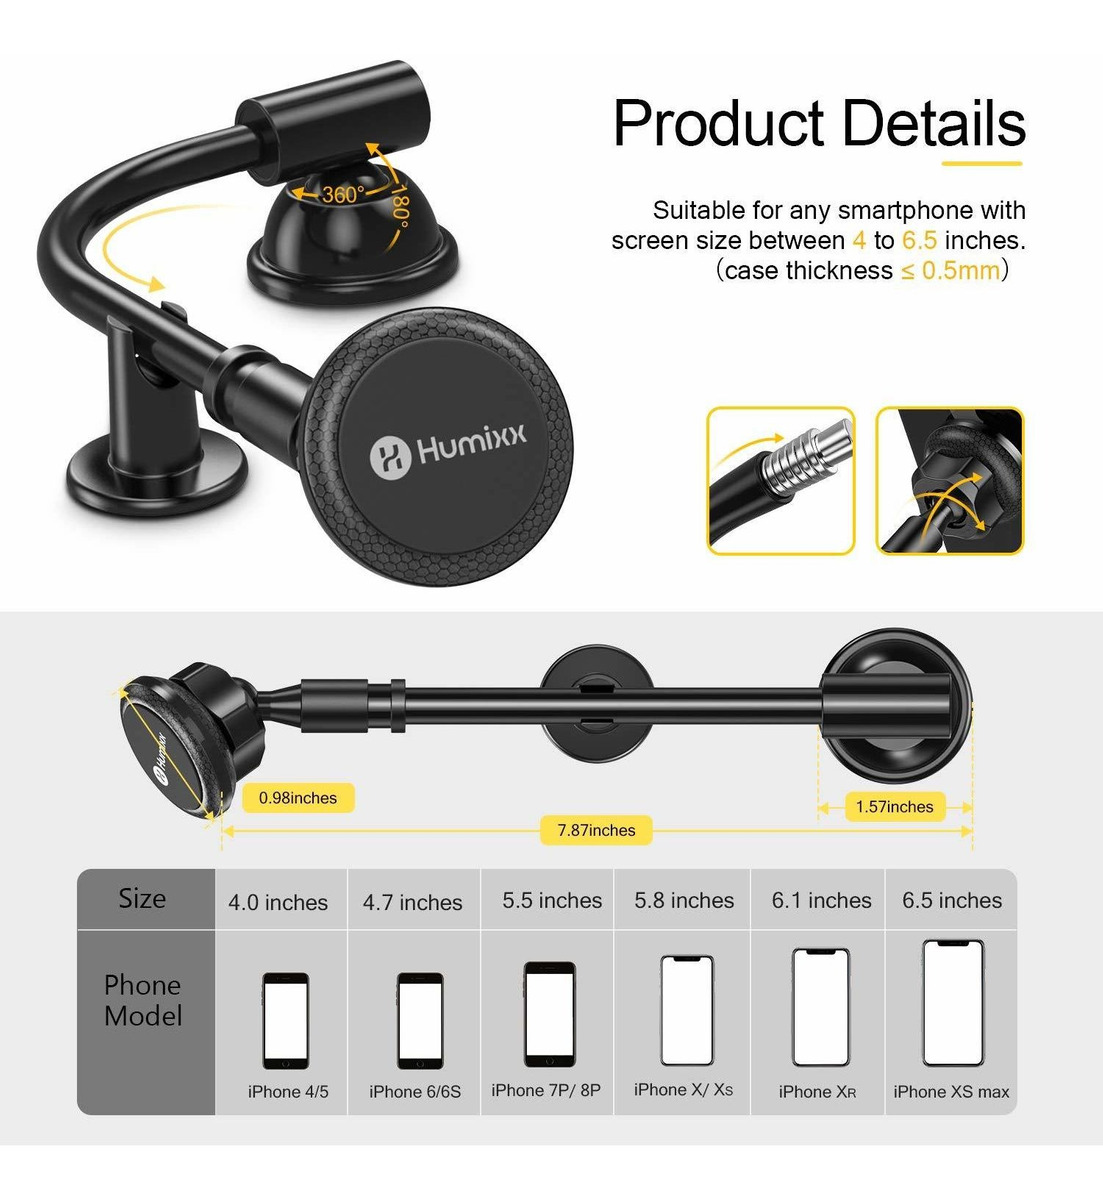 Super Magnetic Phone Car Holder Long Arm for Any Smartphone under 6.5 Inche HX-PH03 Car Phone Mount Humixx Long Arm Universal Magnetic Cradle Windshield Dashboard Cell Phone Mount Holder with 4 Metal Plates